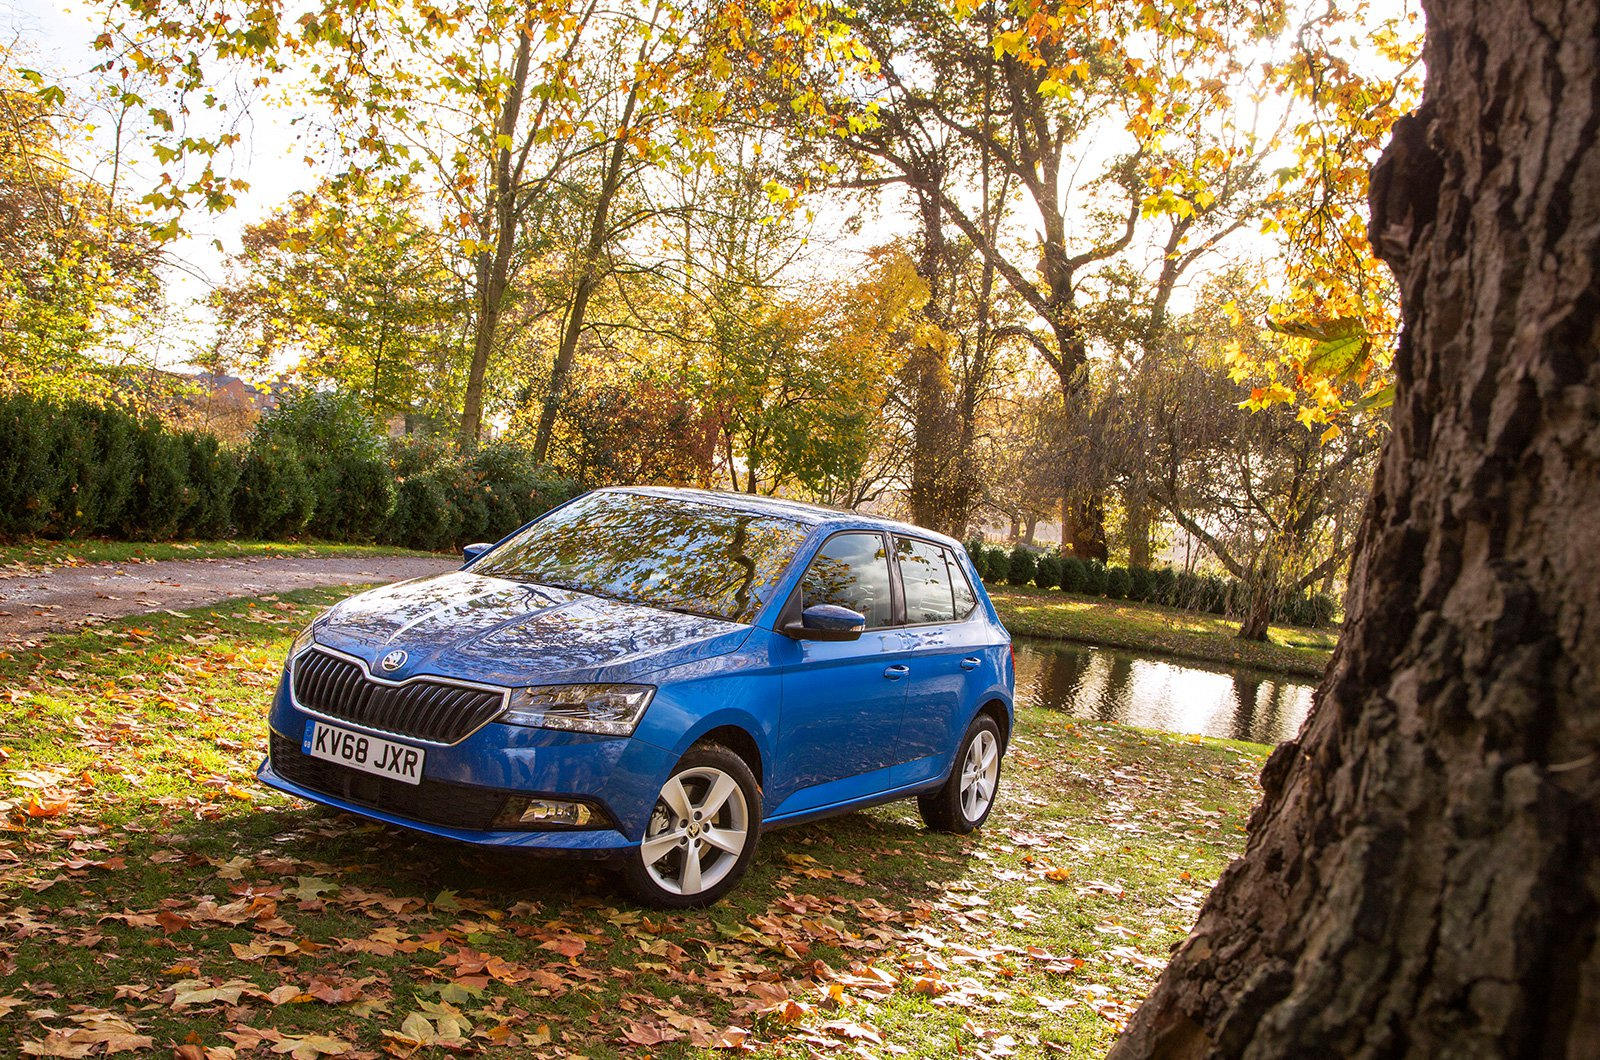 The Skoda Fabia is perfect for Beth's busy lifestyle – including her passion for drone photography